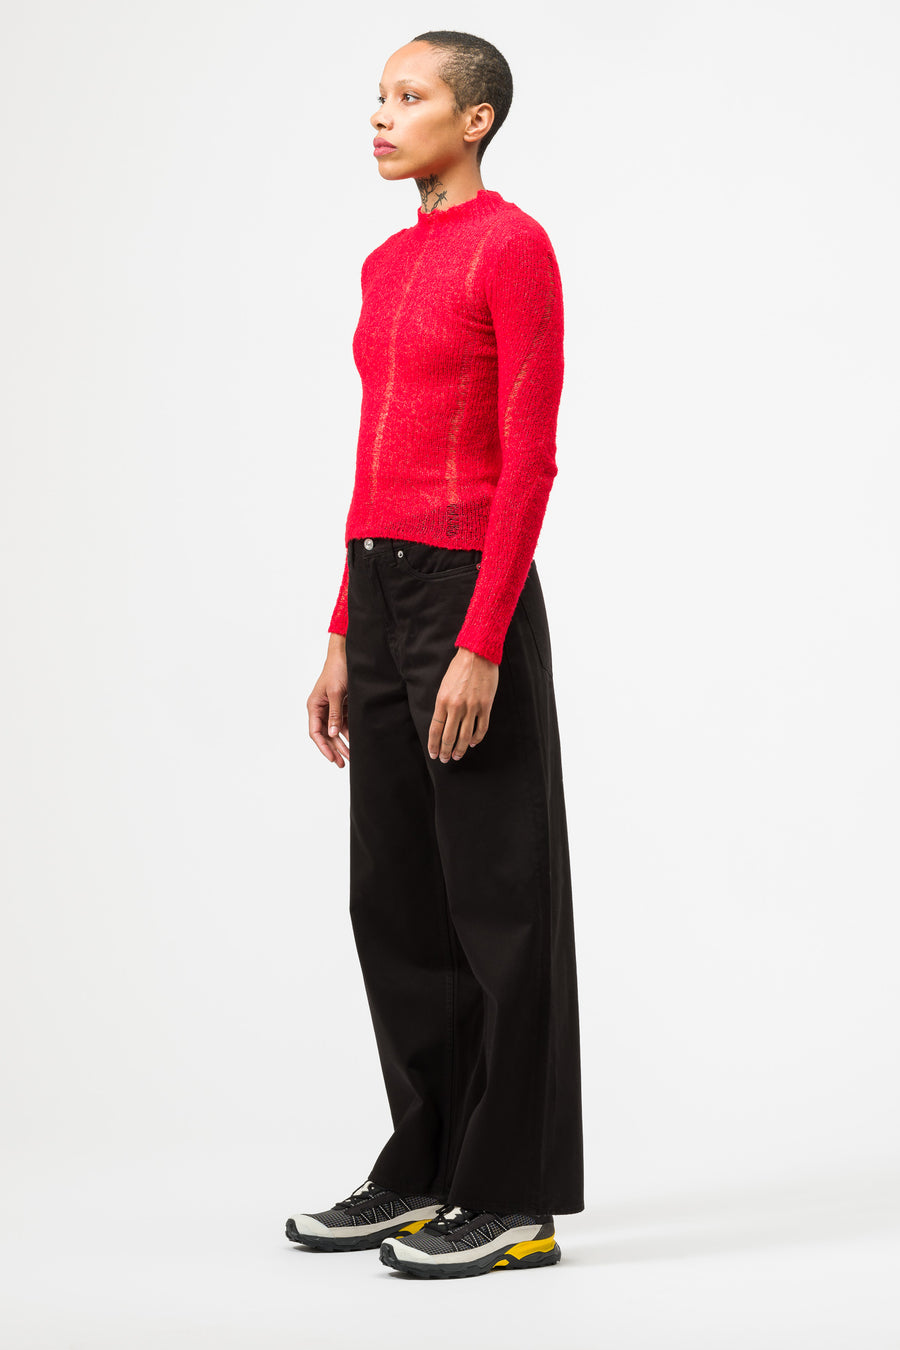 Our Legacy Slim Turtleneck in Red Airwool - Notre